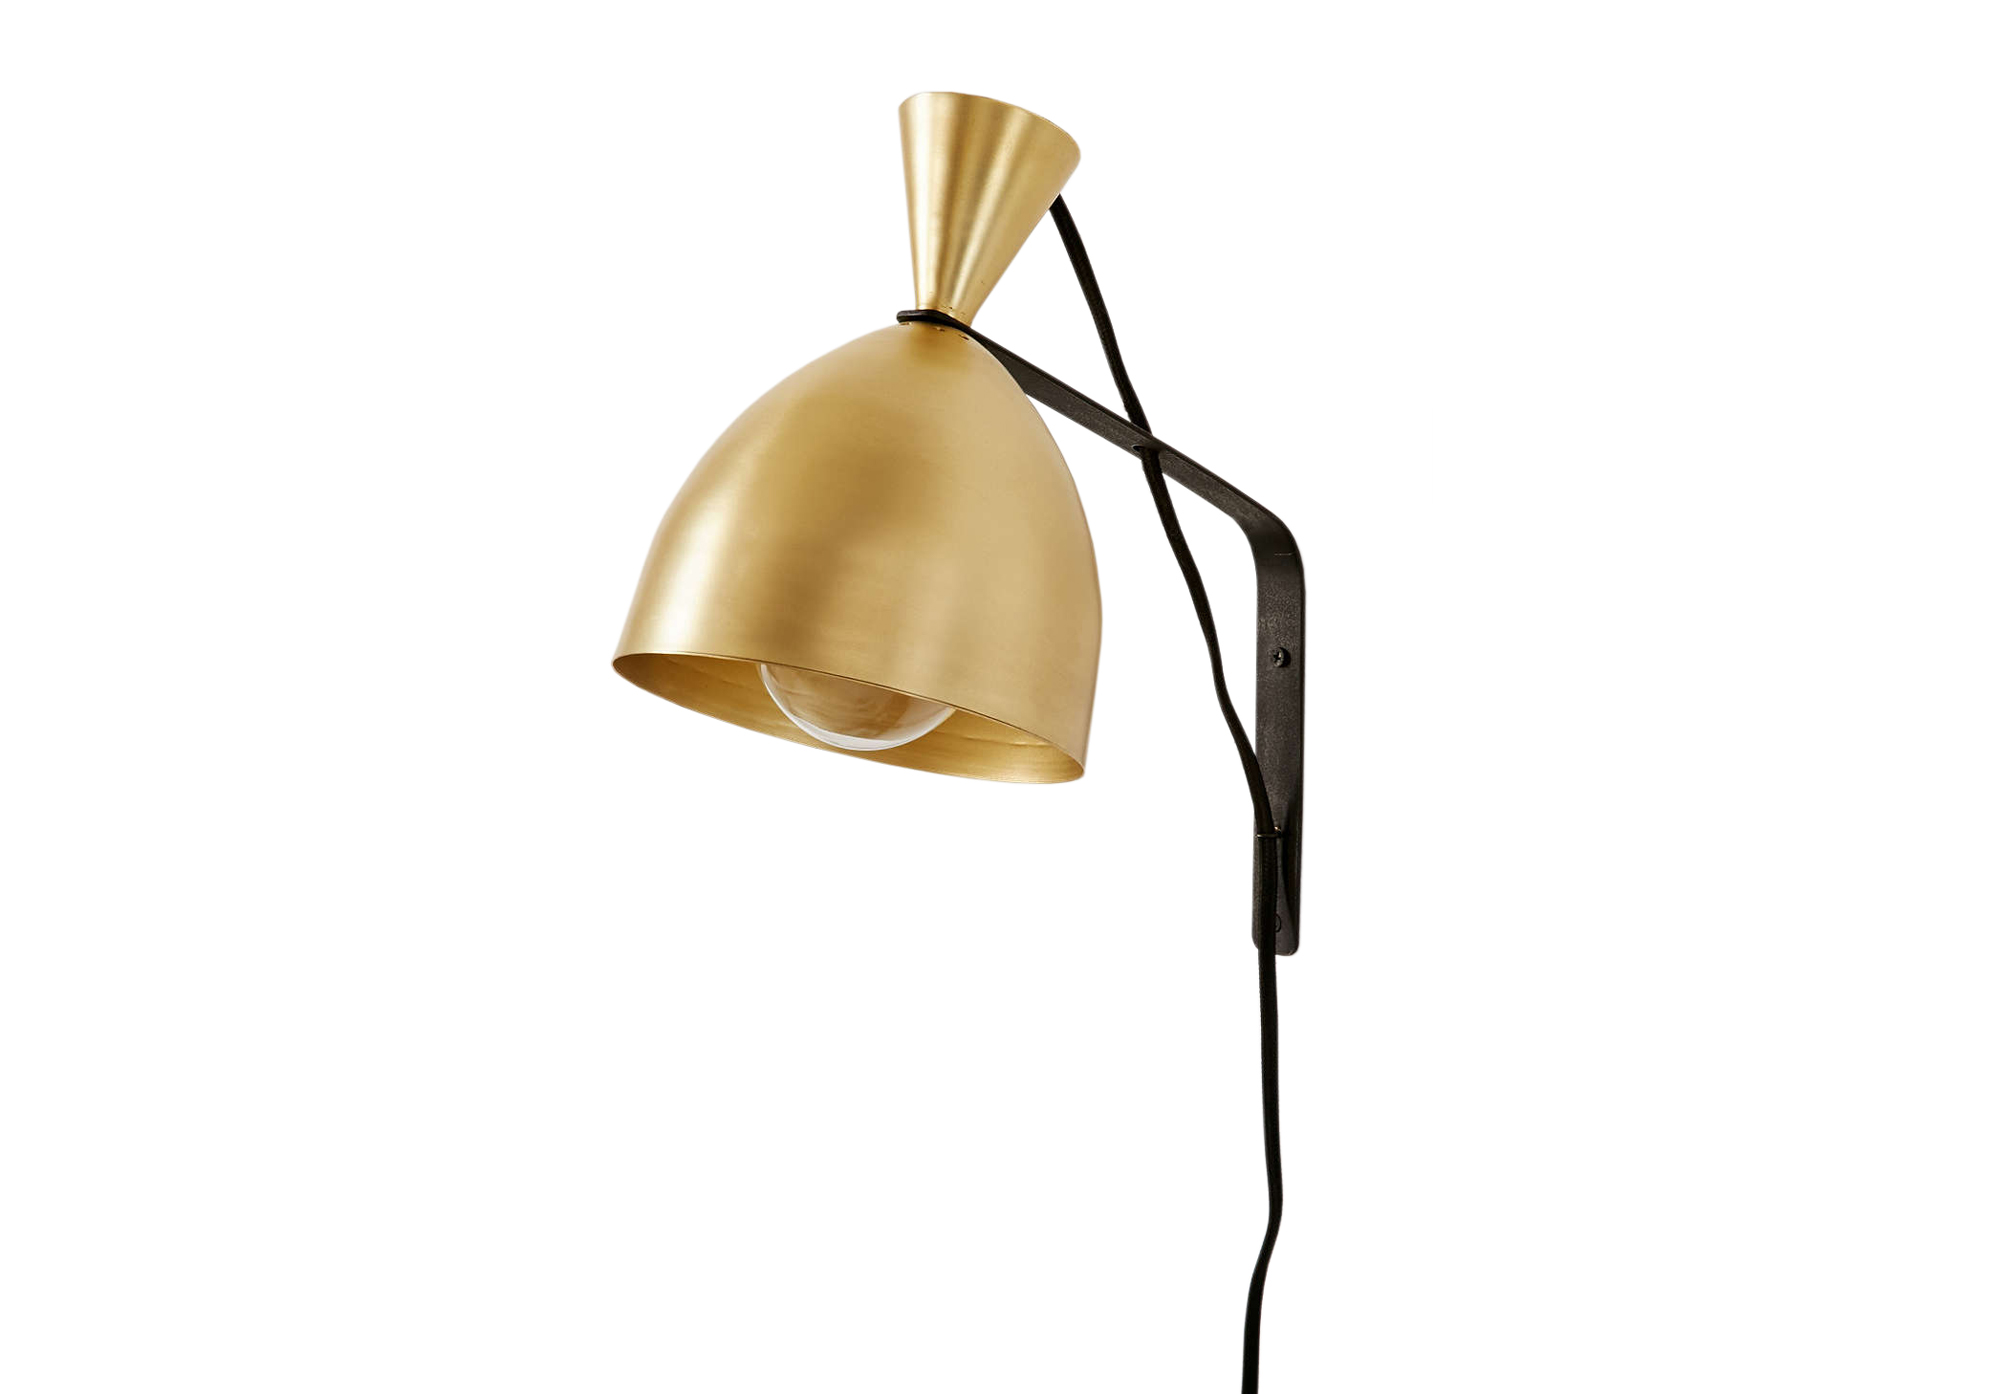 Wall Sconces Urban Outfitters: 7 Surprisingly Sophisticated Finds From Kids' Stores